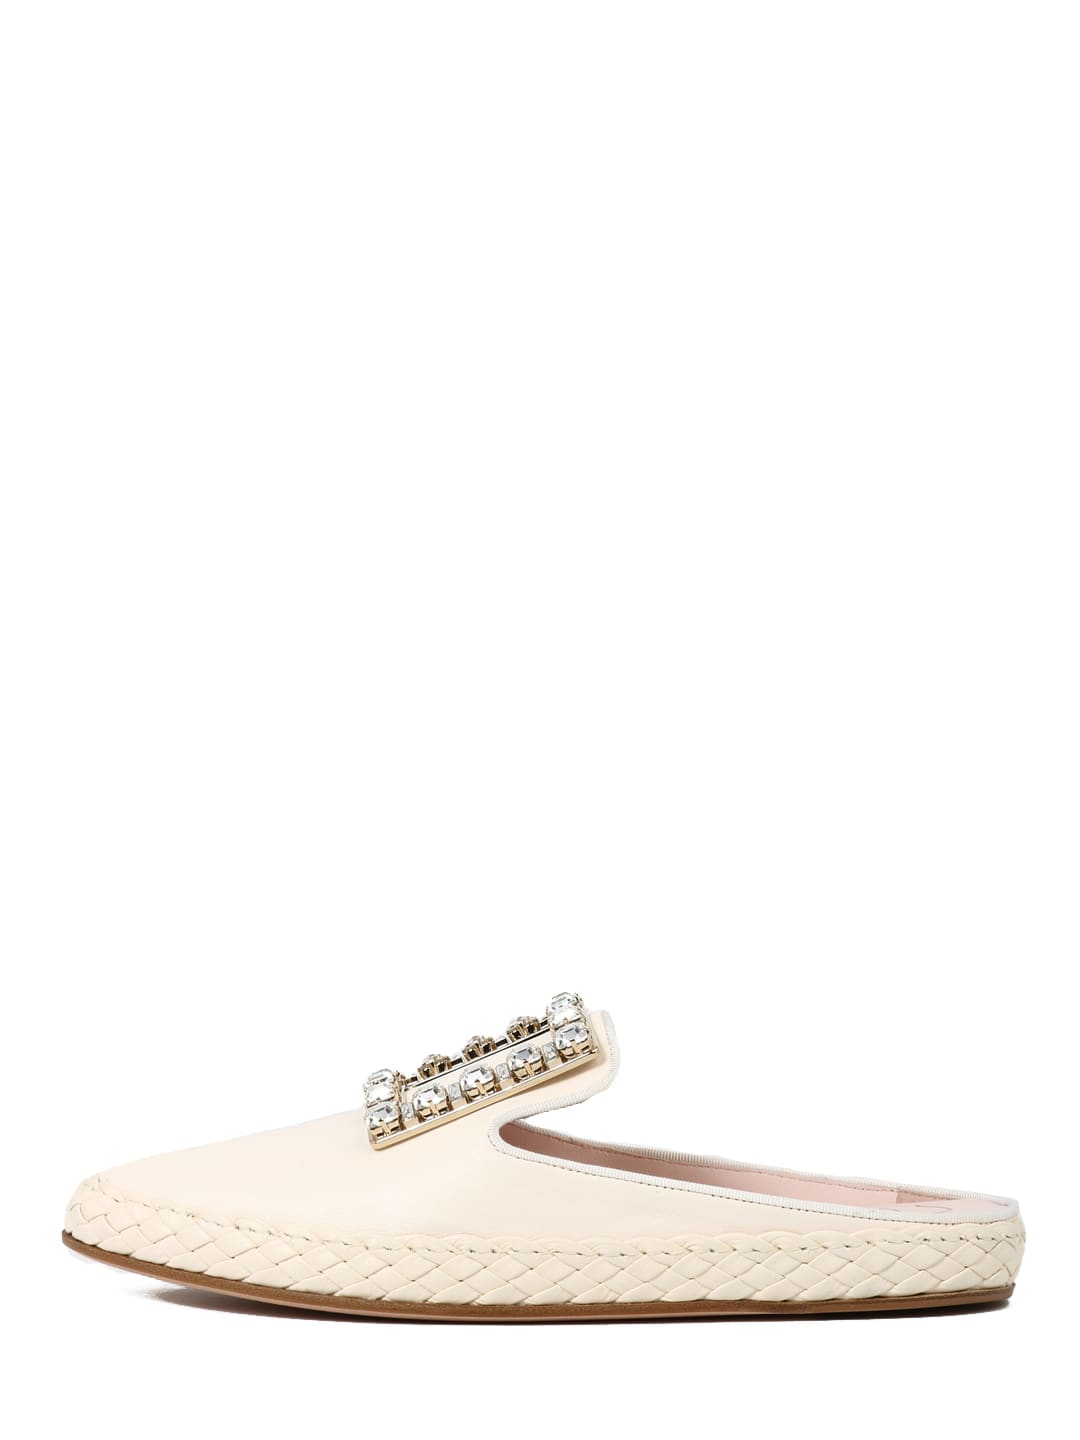 Roger Vivier MULE RV LOUNGE STRASS BUCKLE